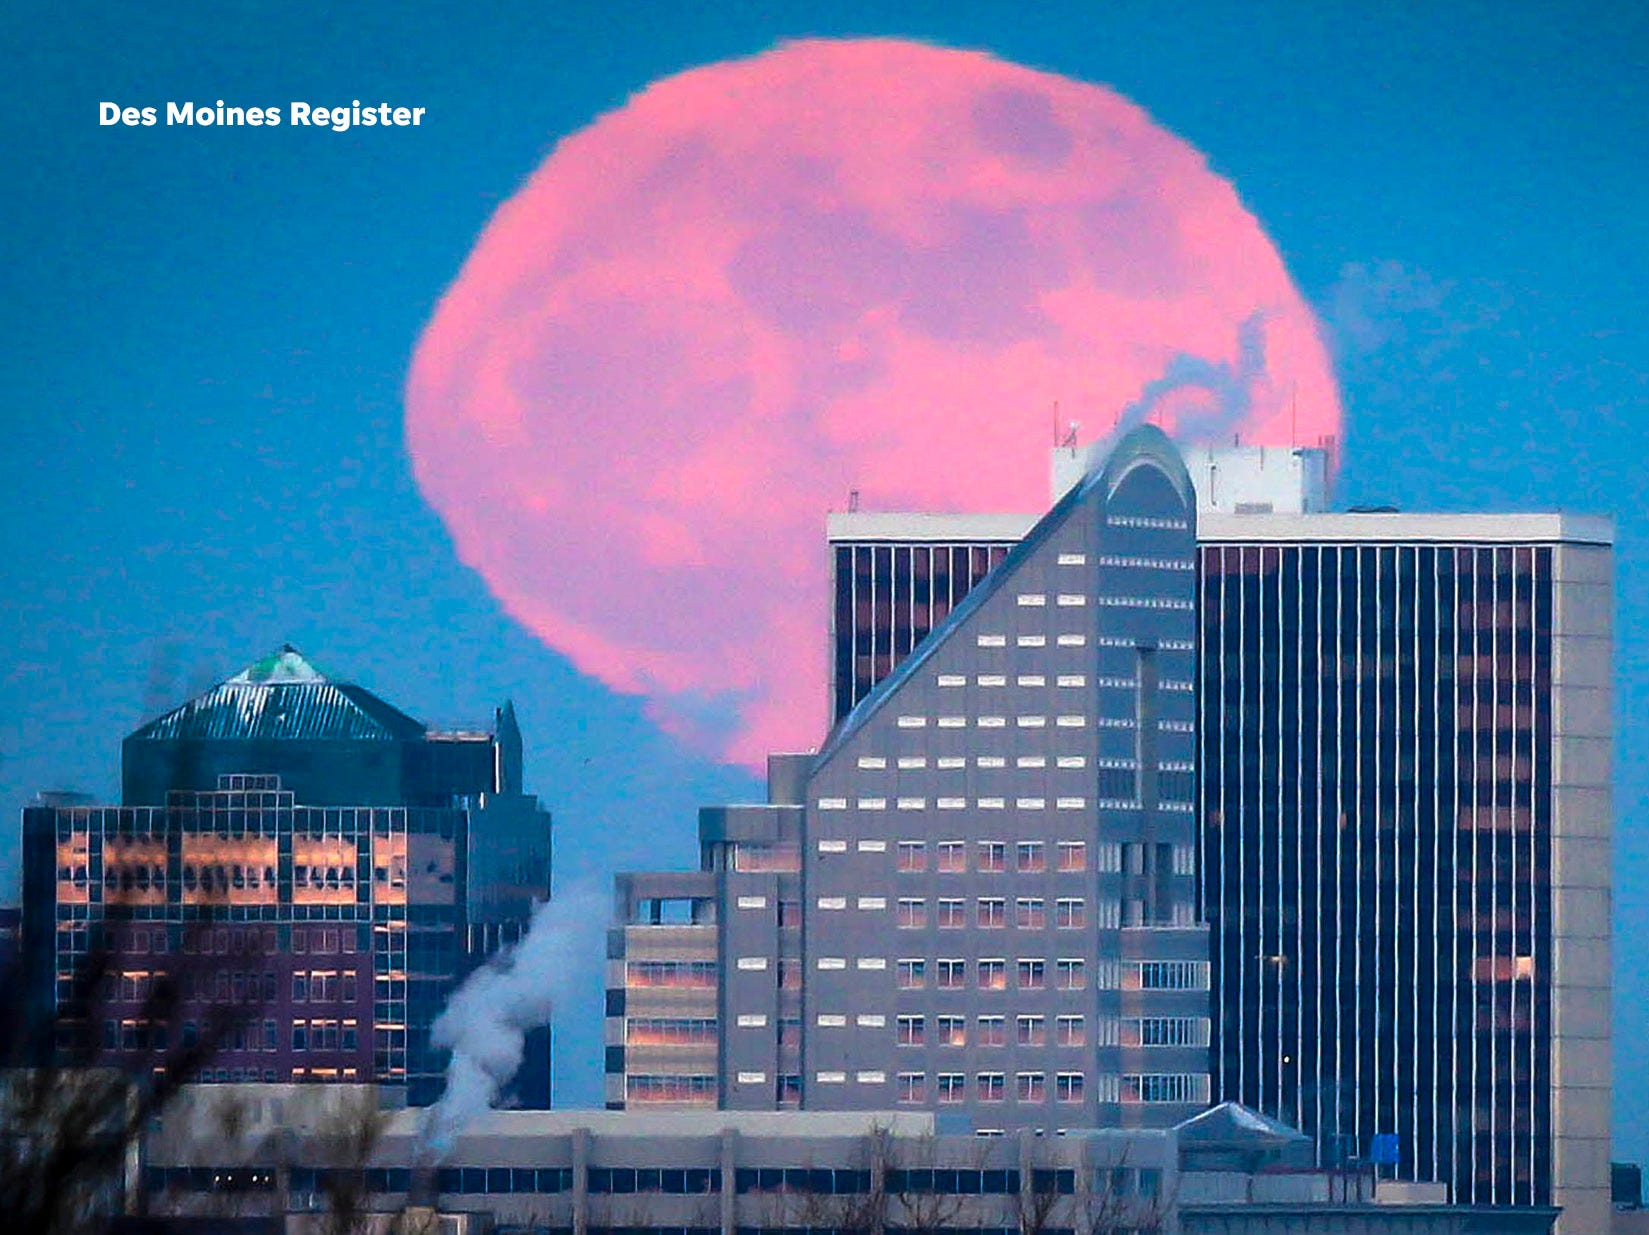 "<b>January:</b> A supermoon rises over downtown Des Moines. The Register's 2019 photo calendar is available for $18 at <a href=""https://shopdmregister.com/collections/photo-gifts/products/2019-des-moines-register-photo-calendar?utm_source=desmoinesregister&utm_medium=link&utm_campaign=launch_gallery"" target=""_blank"">ShopDMRegister.com. </a>"